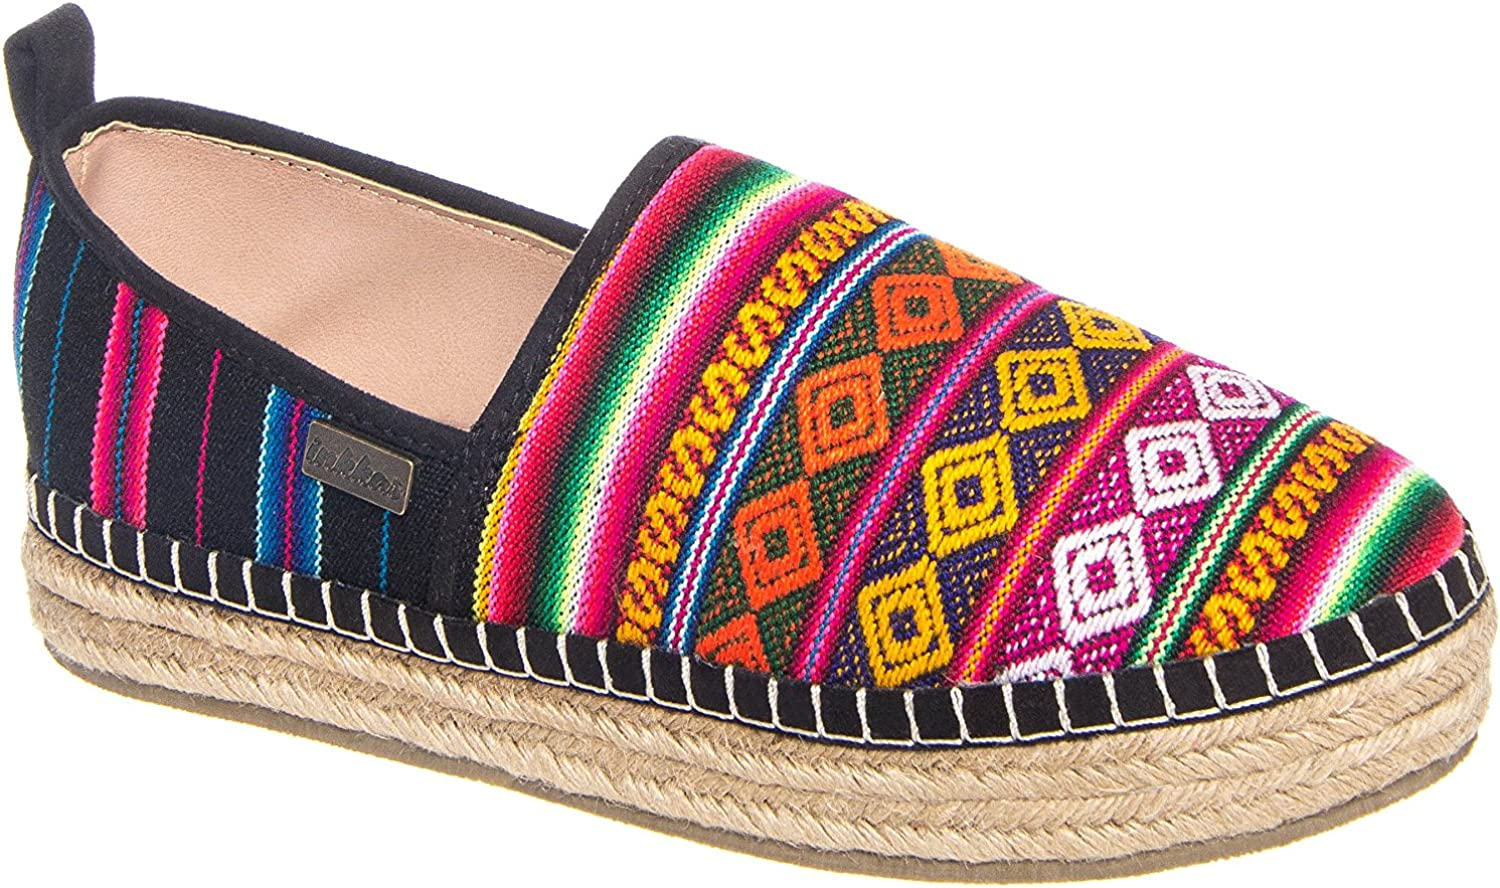 Inkkas shoes Black Spectrum Platform Espadrille